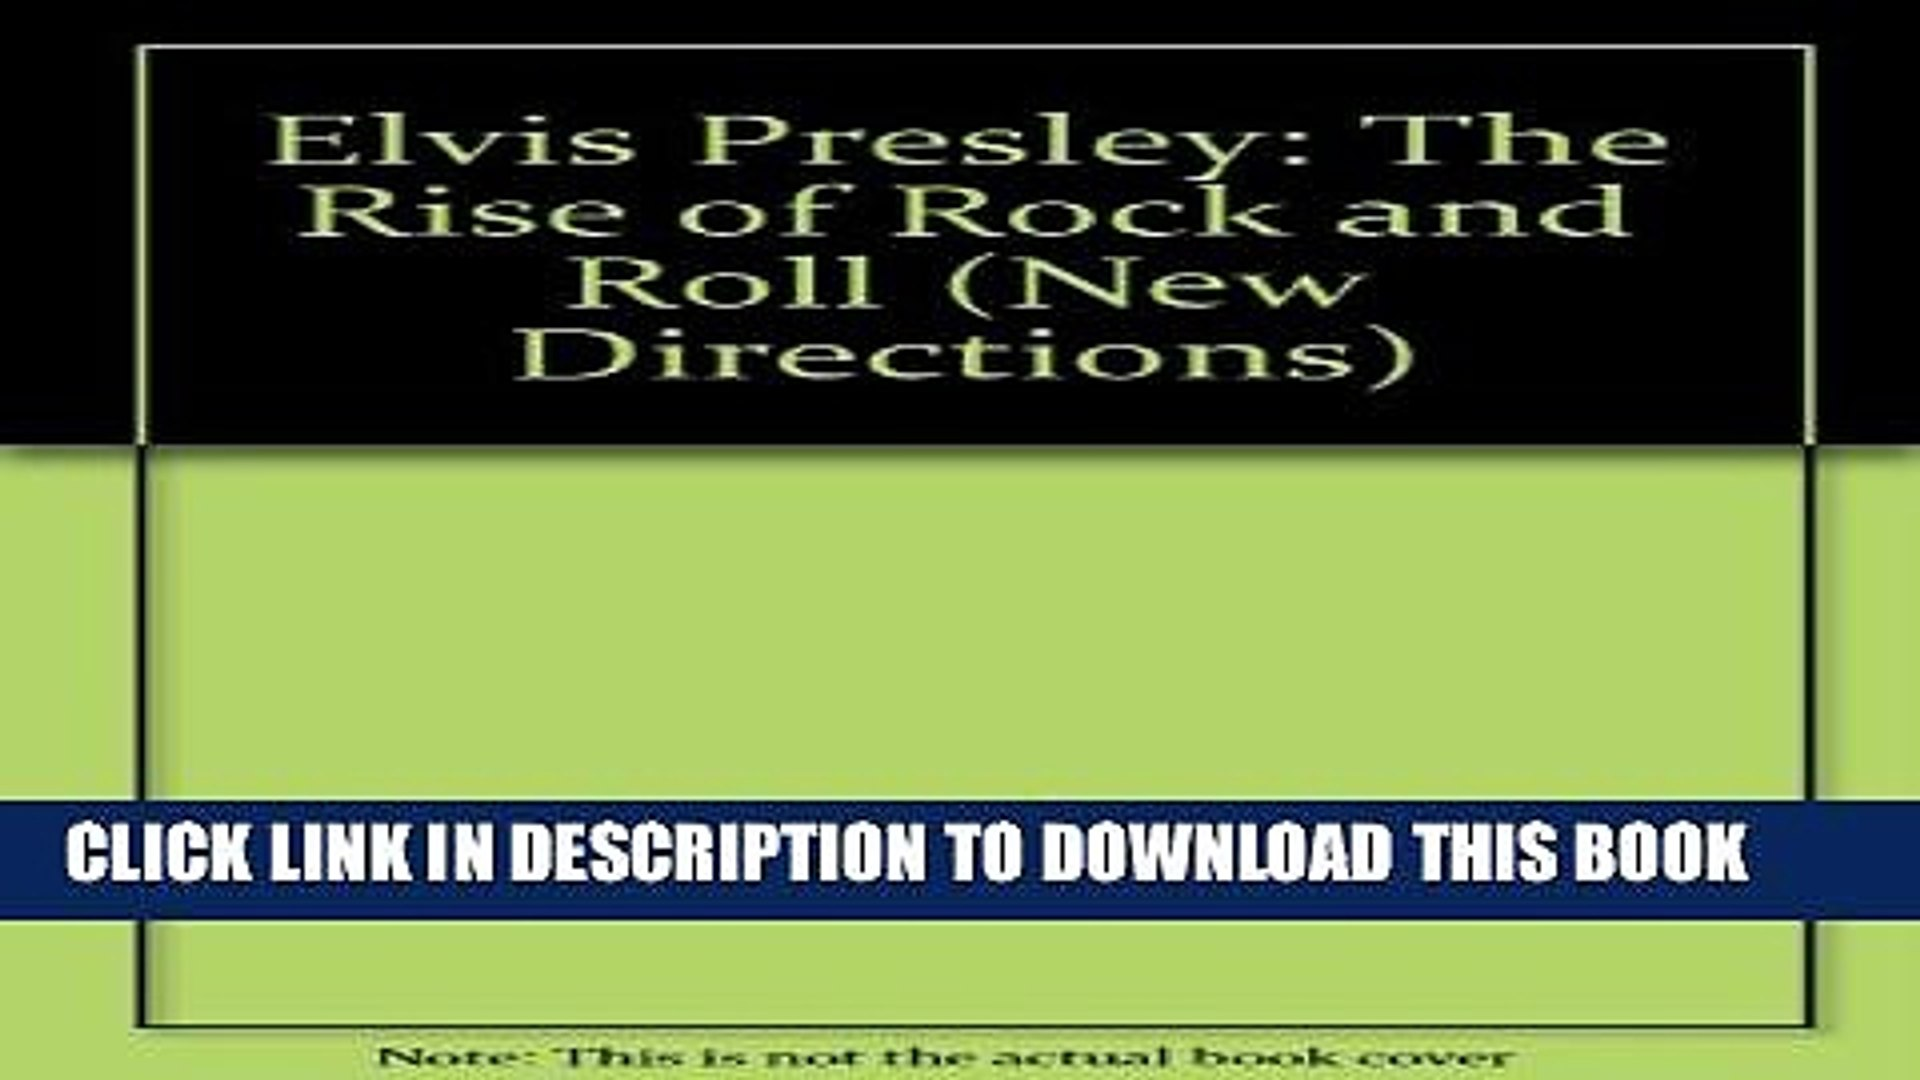 [PDF] Elvis Presley: The Rise of Rock and Roll Full Online